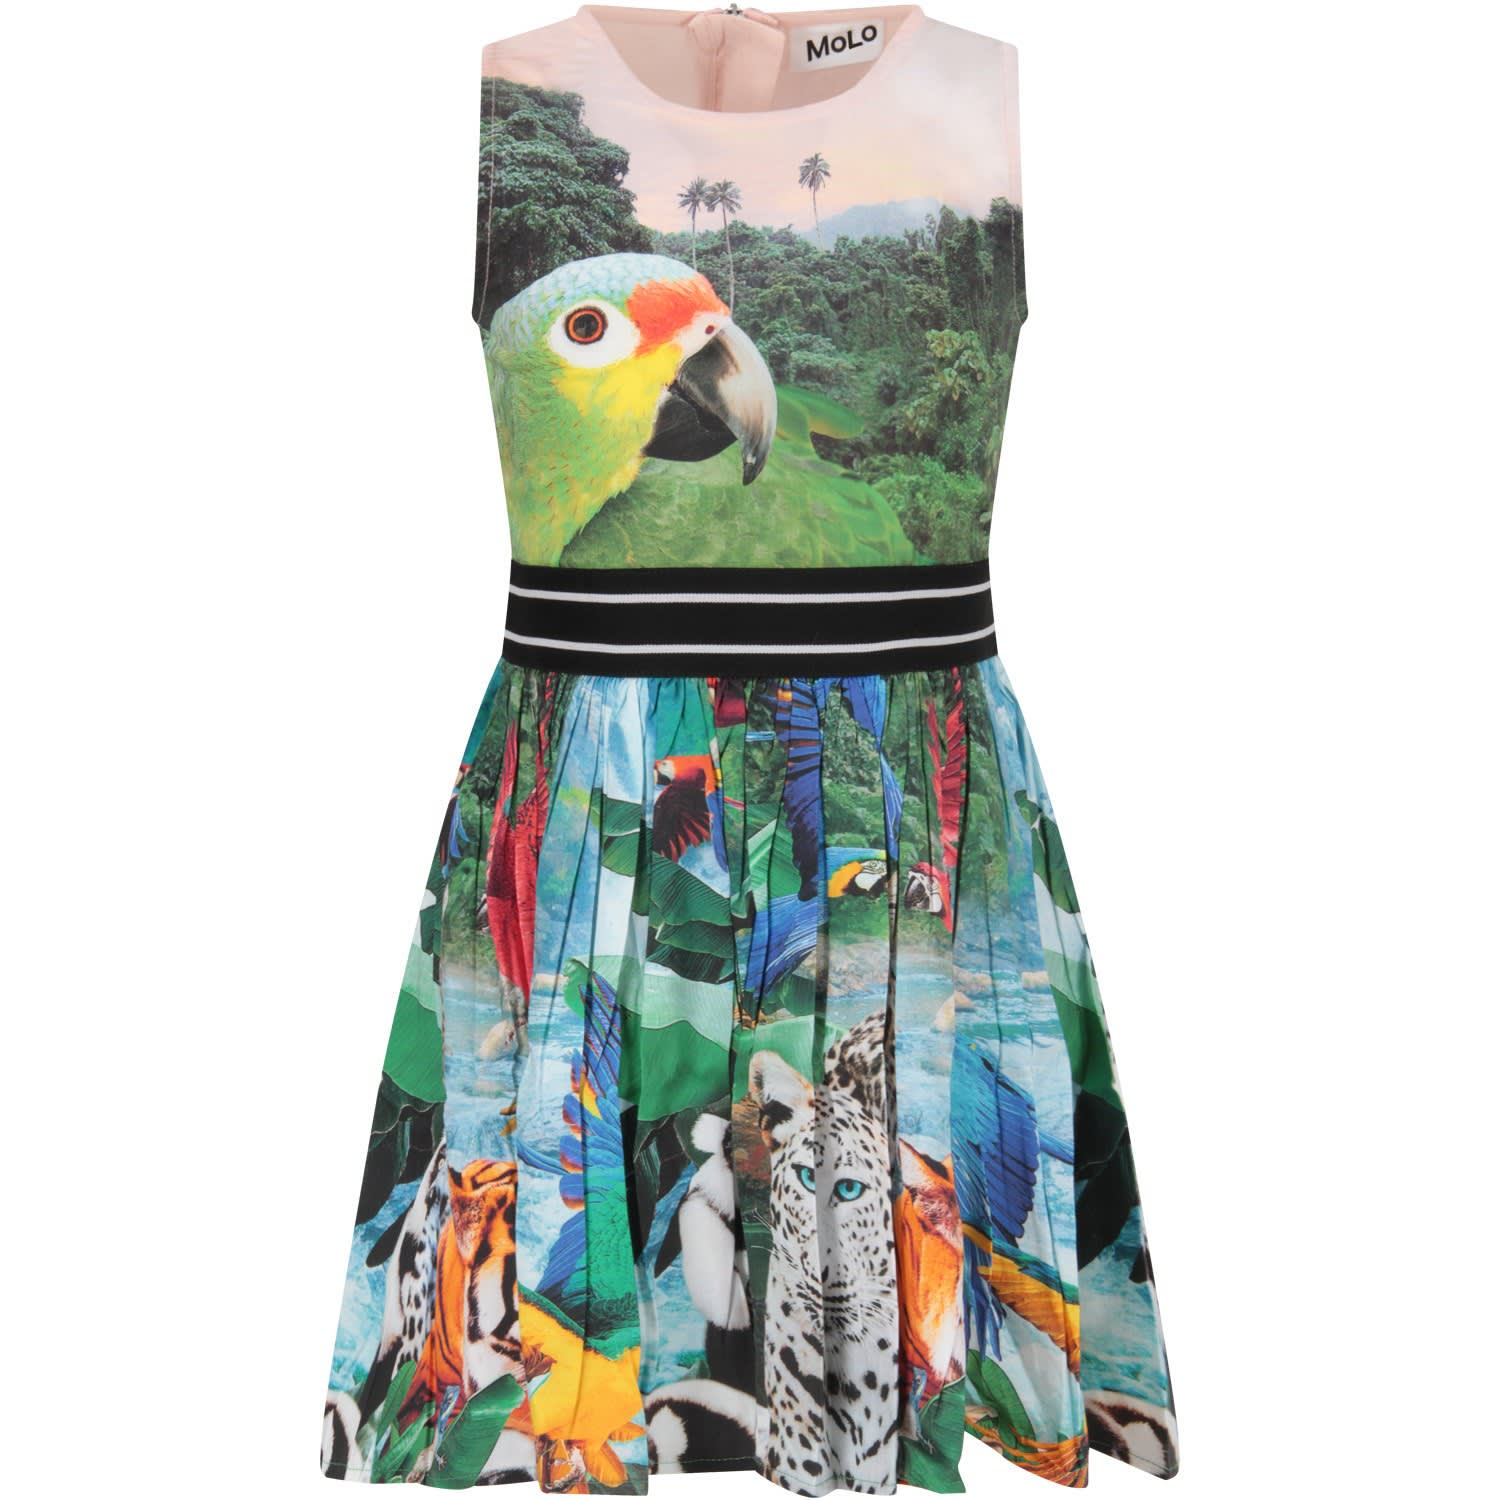 Buy Molo Multicolor Girl Dress With Colorful Parrots online, shop Molo with free shipping